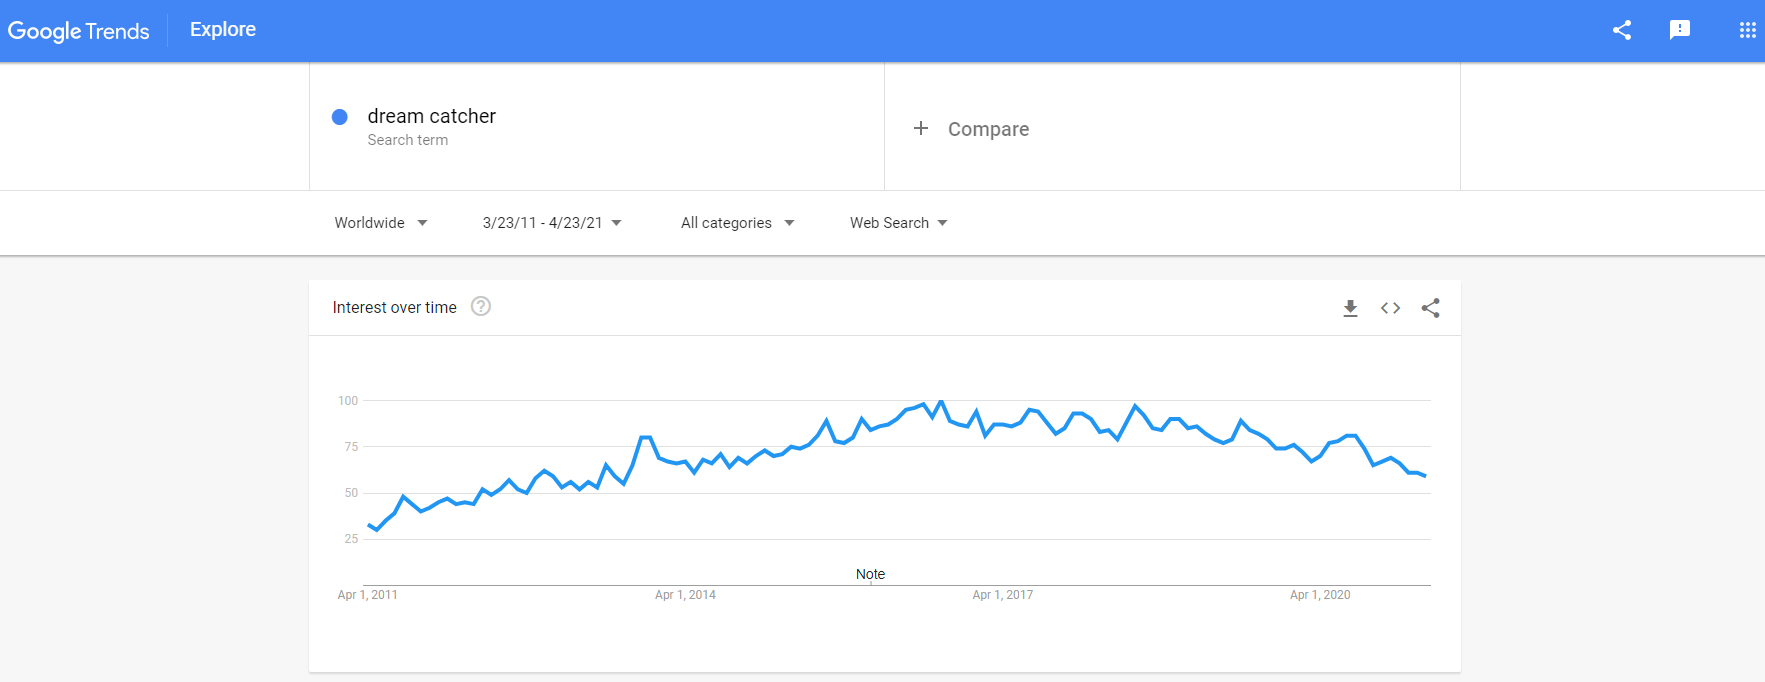 Google Trends results for 'dream catcher